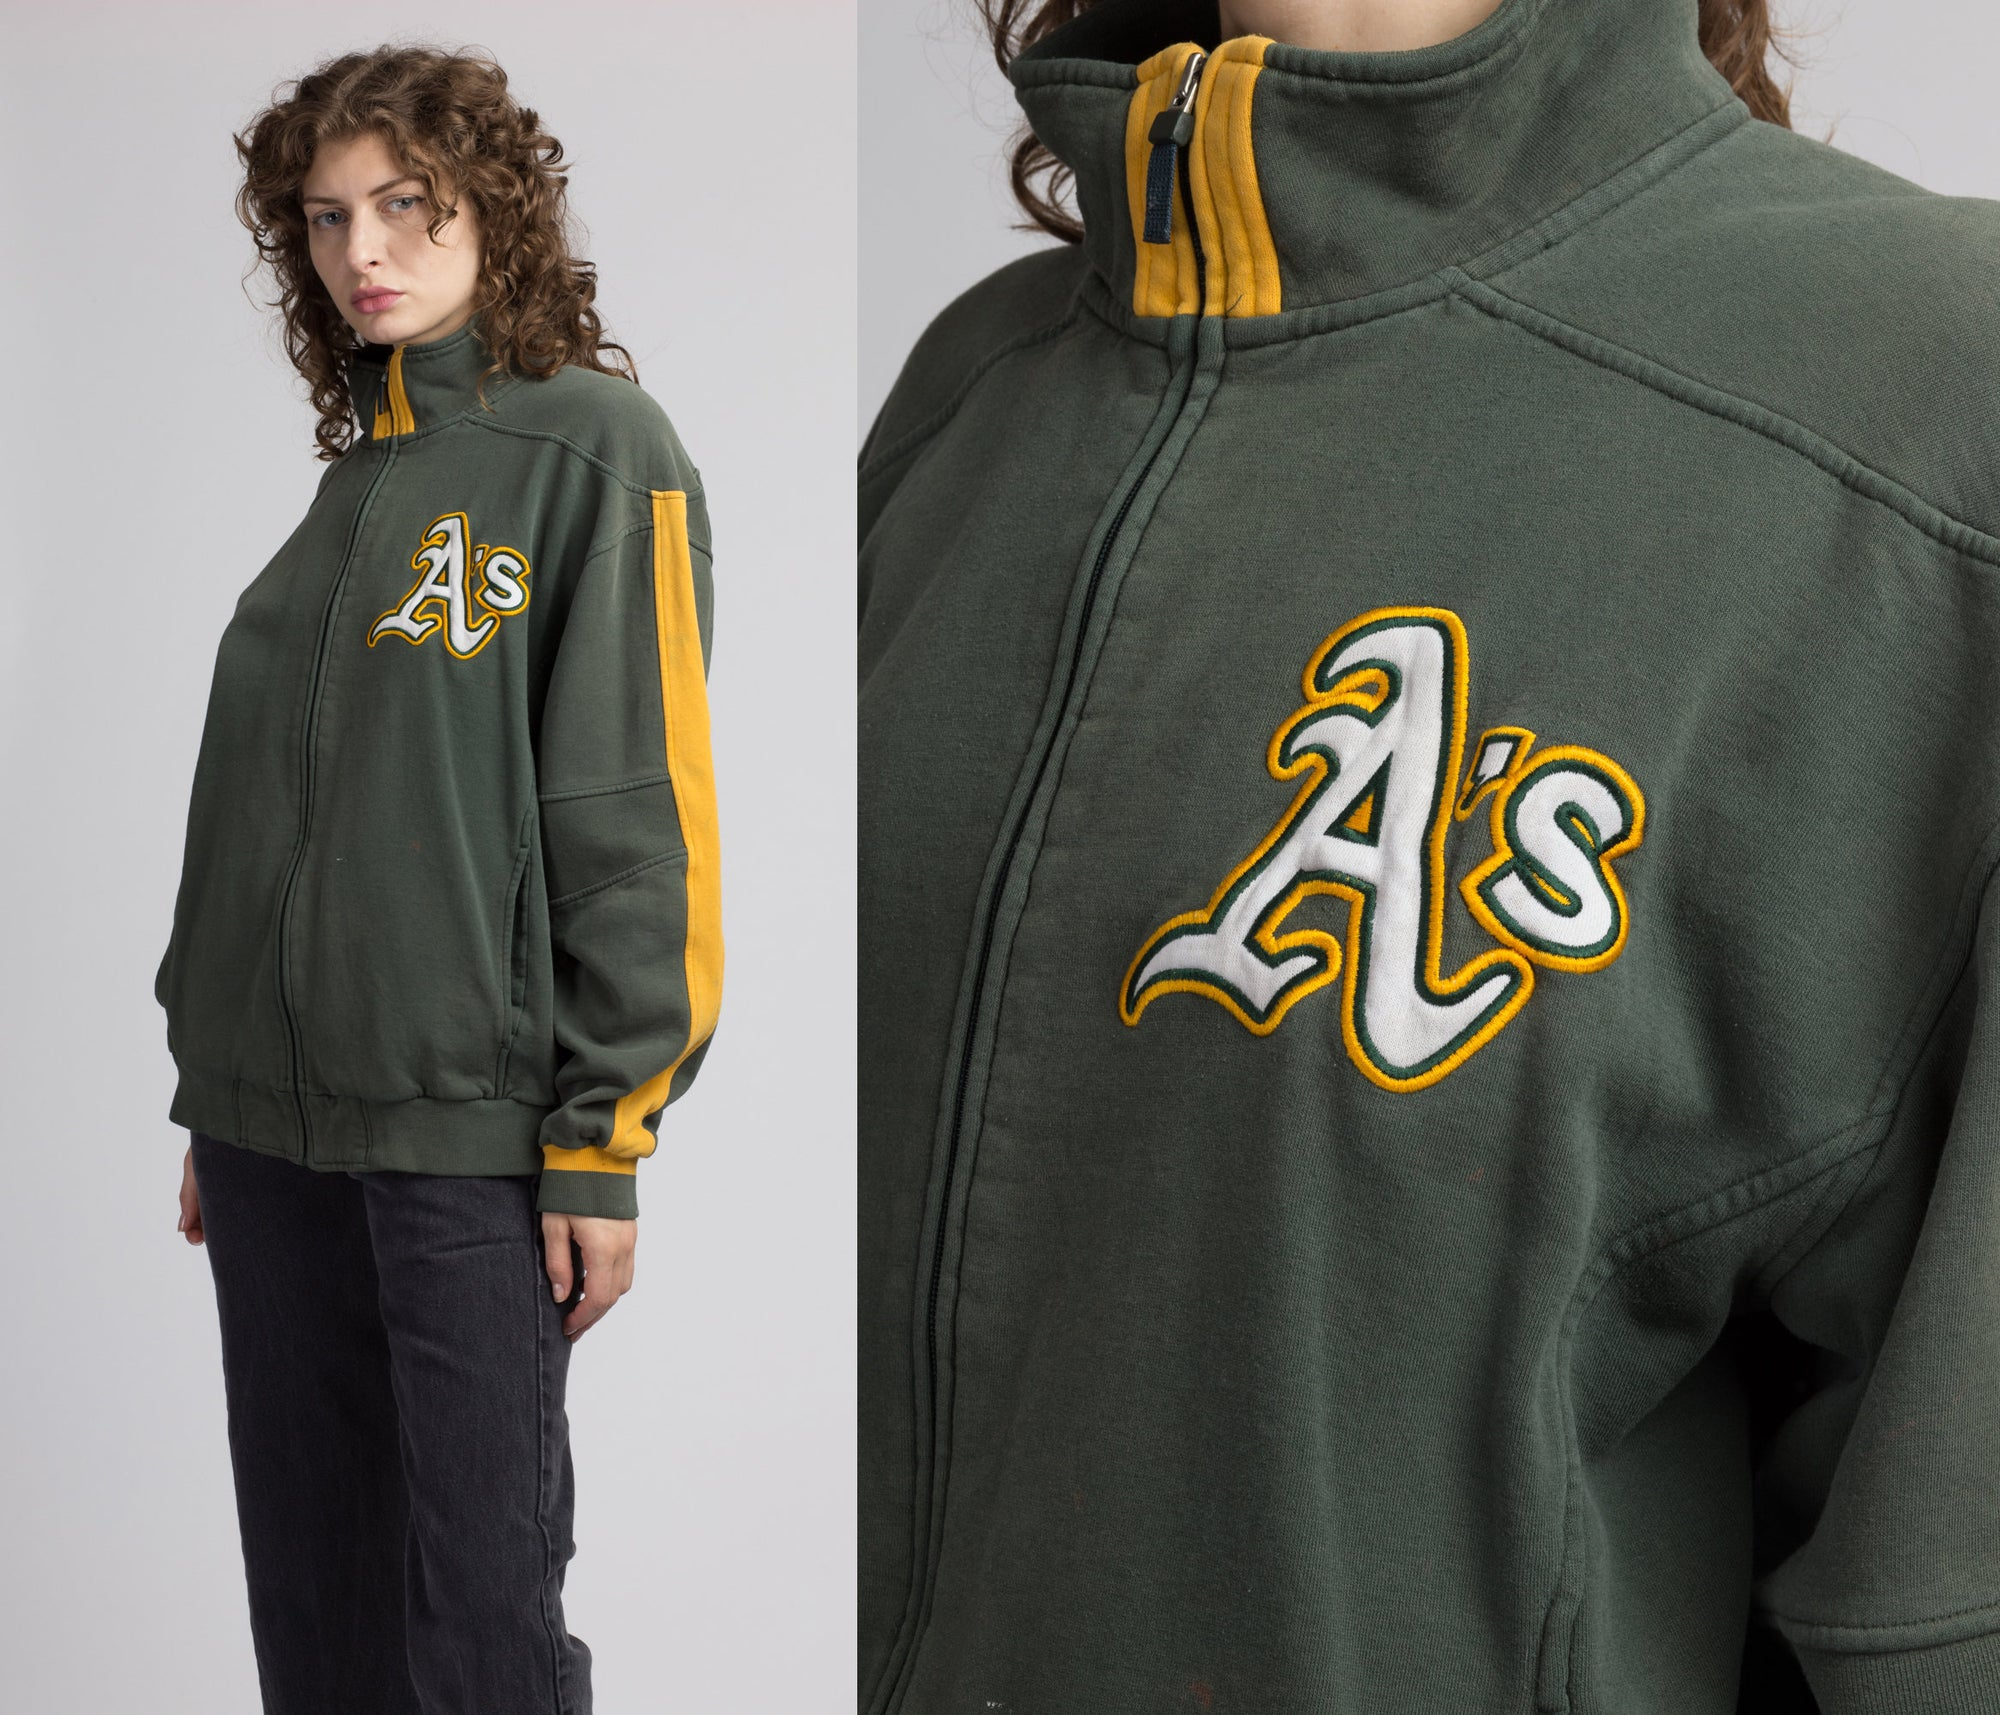 90s Oakland A's Zip Up Track Jacket - Men's Large